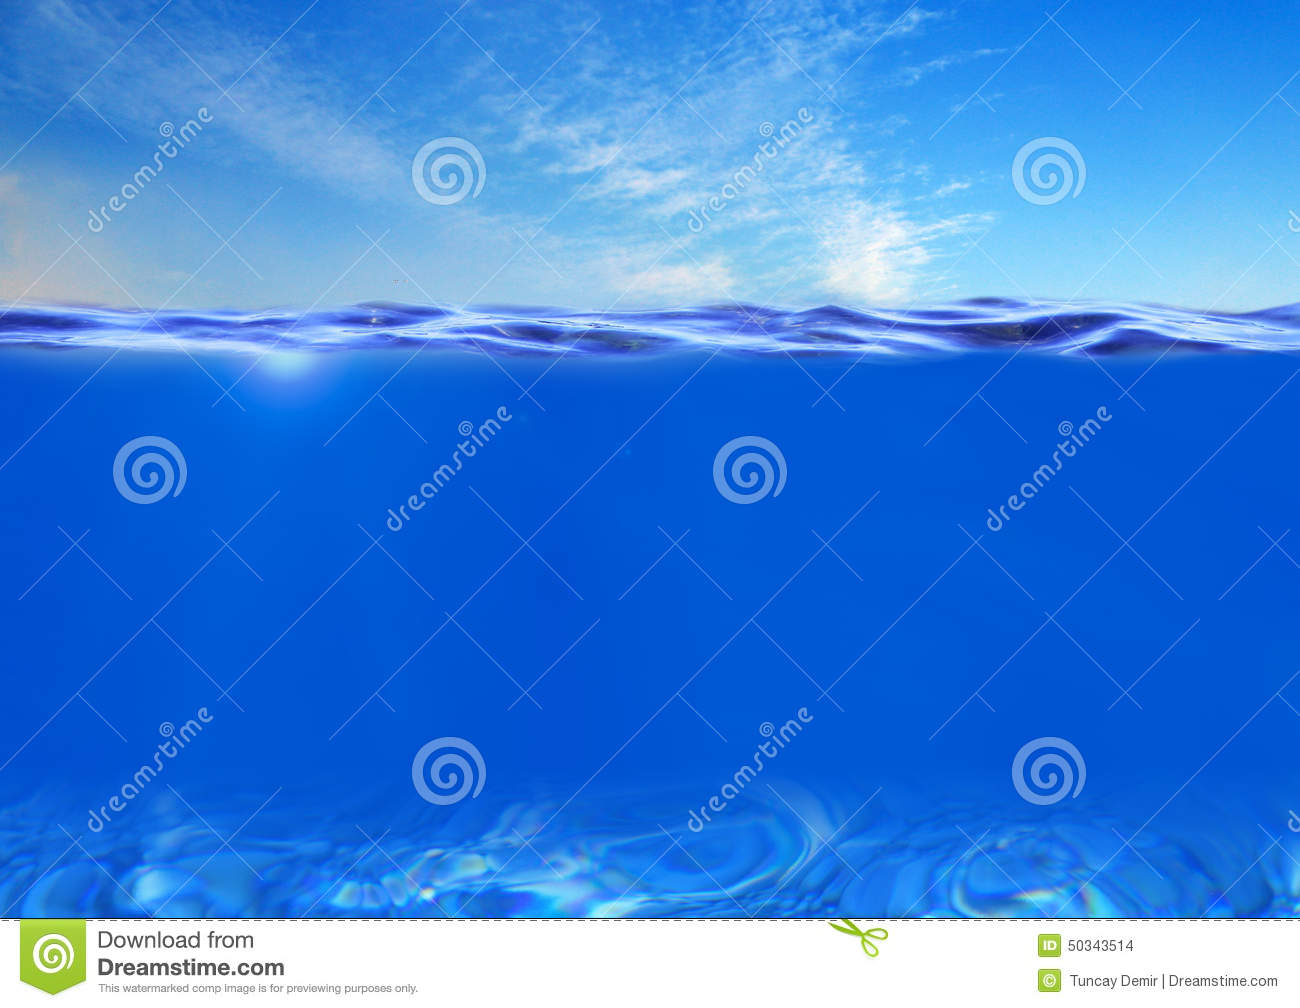 water surface wallpaper - photo #23